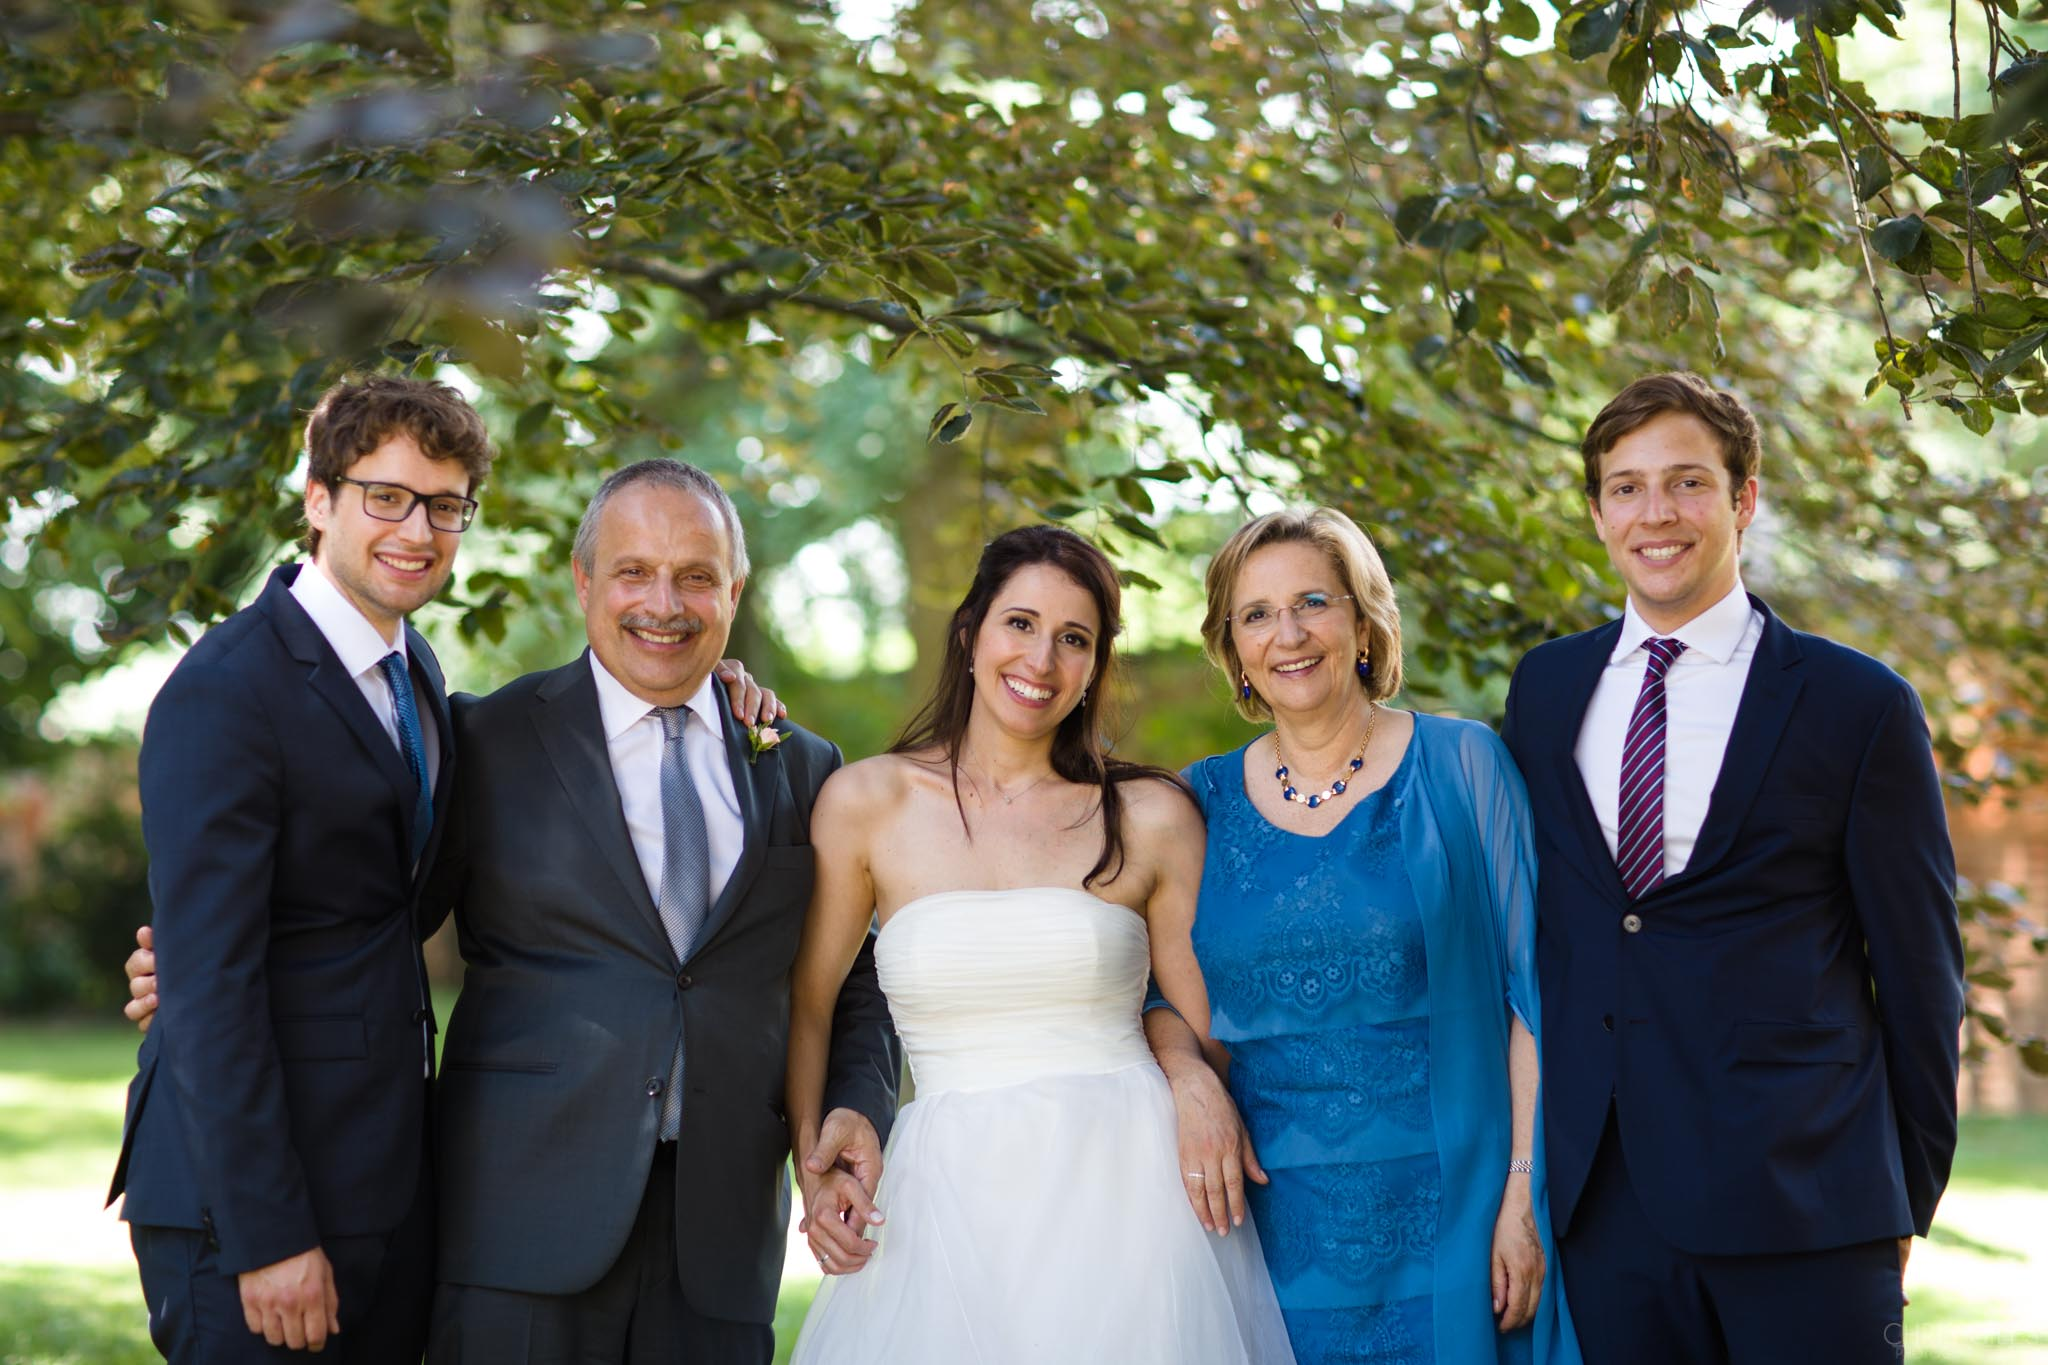 Bridal family portraits at an Italian wedding